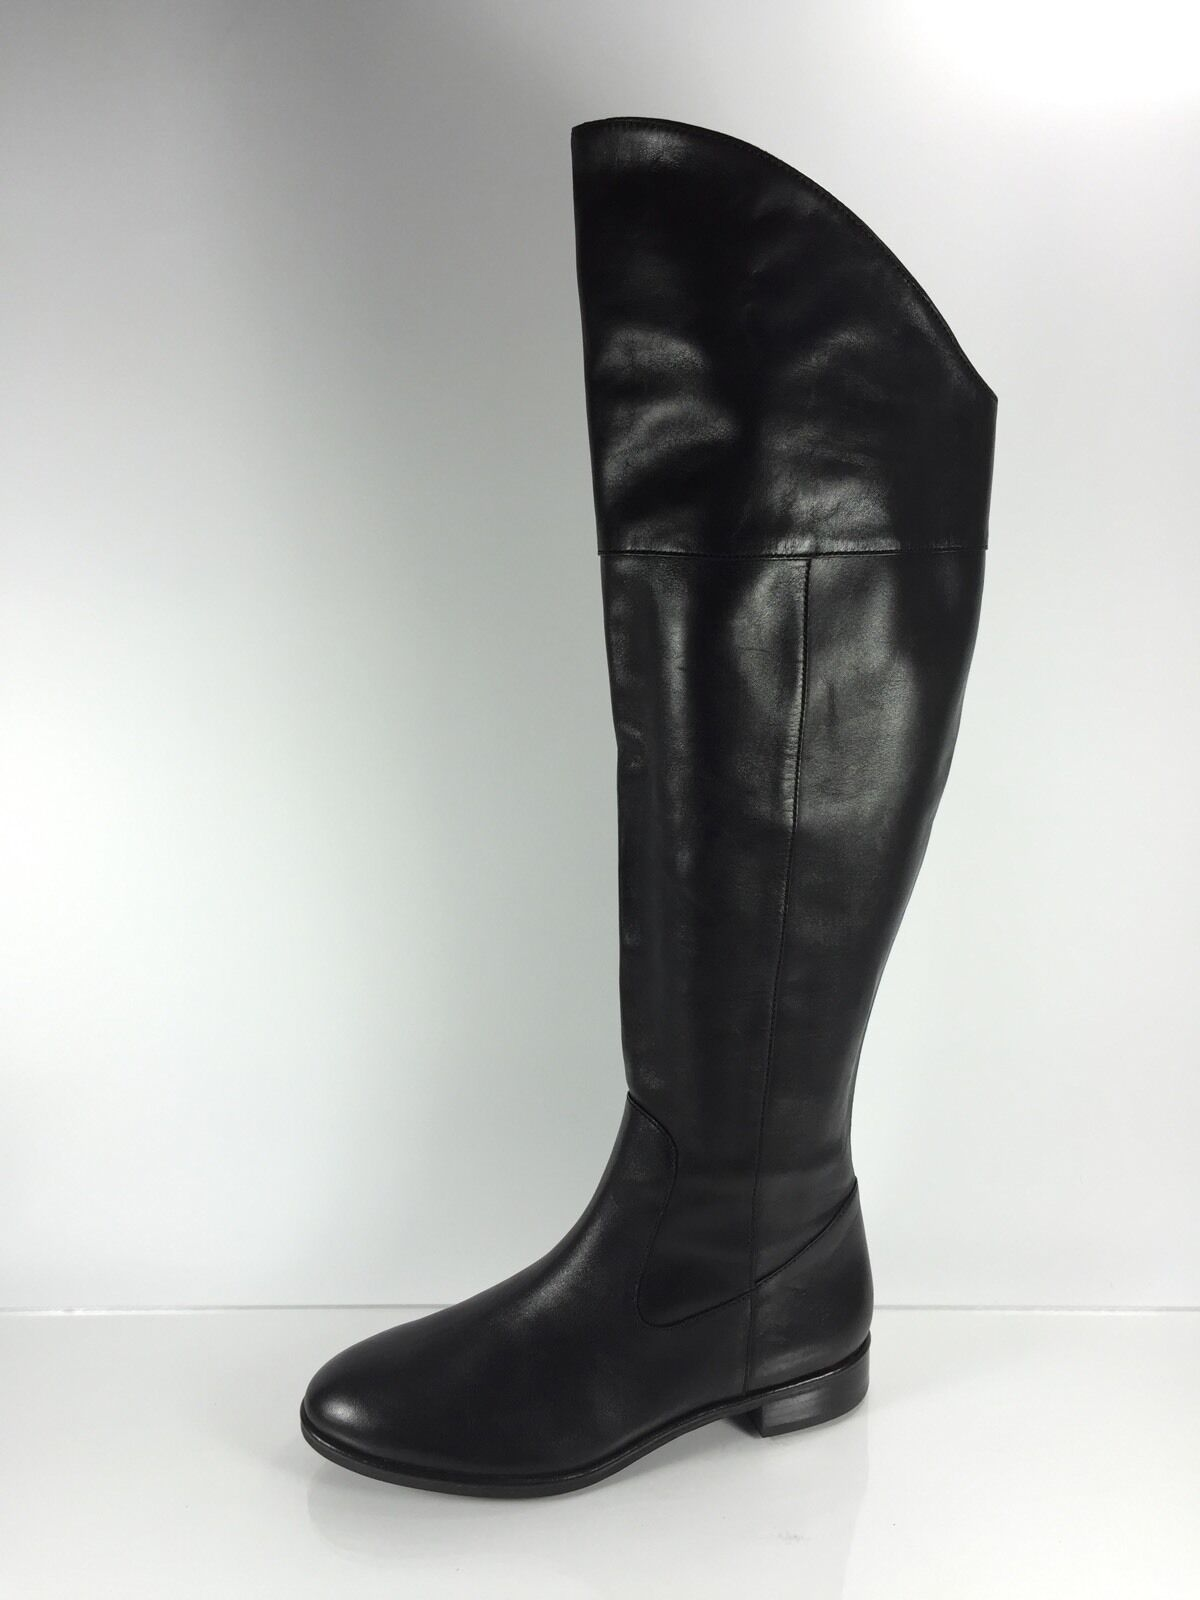 Via Spiga Womens Black Leather Over The Knee Boots 7.5 M